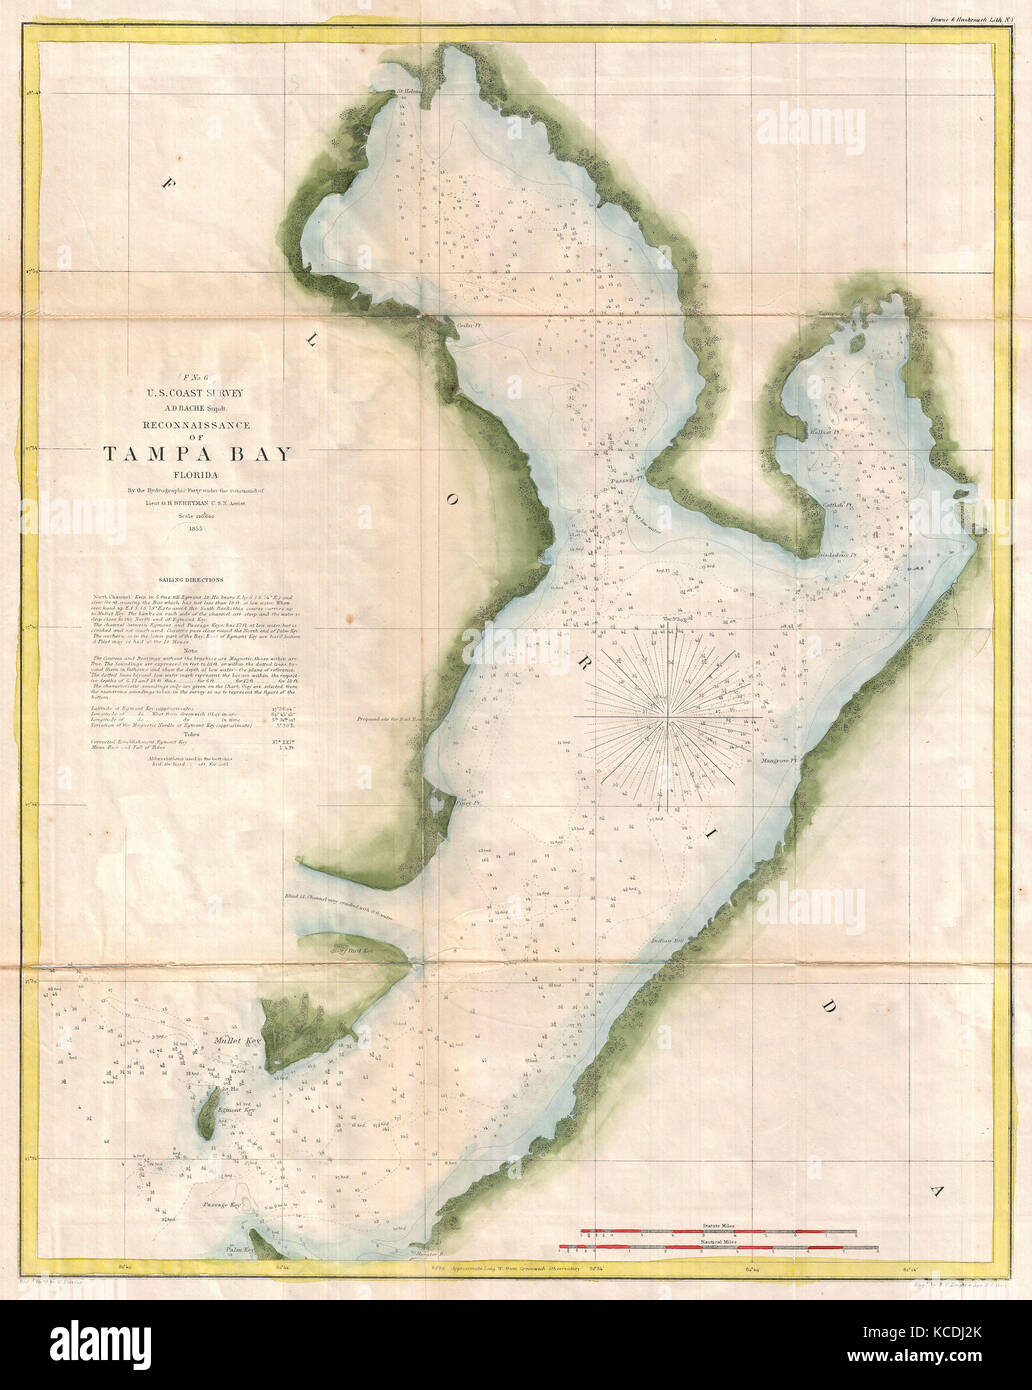 Map Of Tampa Bay Florida.1855 U S Coast Survey Chart Or Map Of Tampa Bay Florida Stock